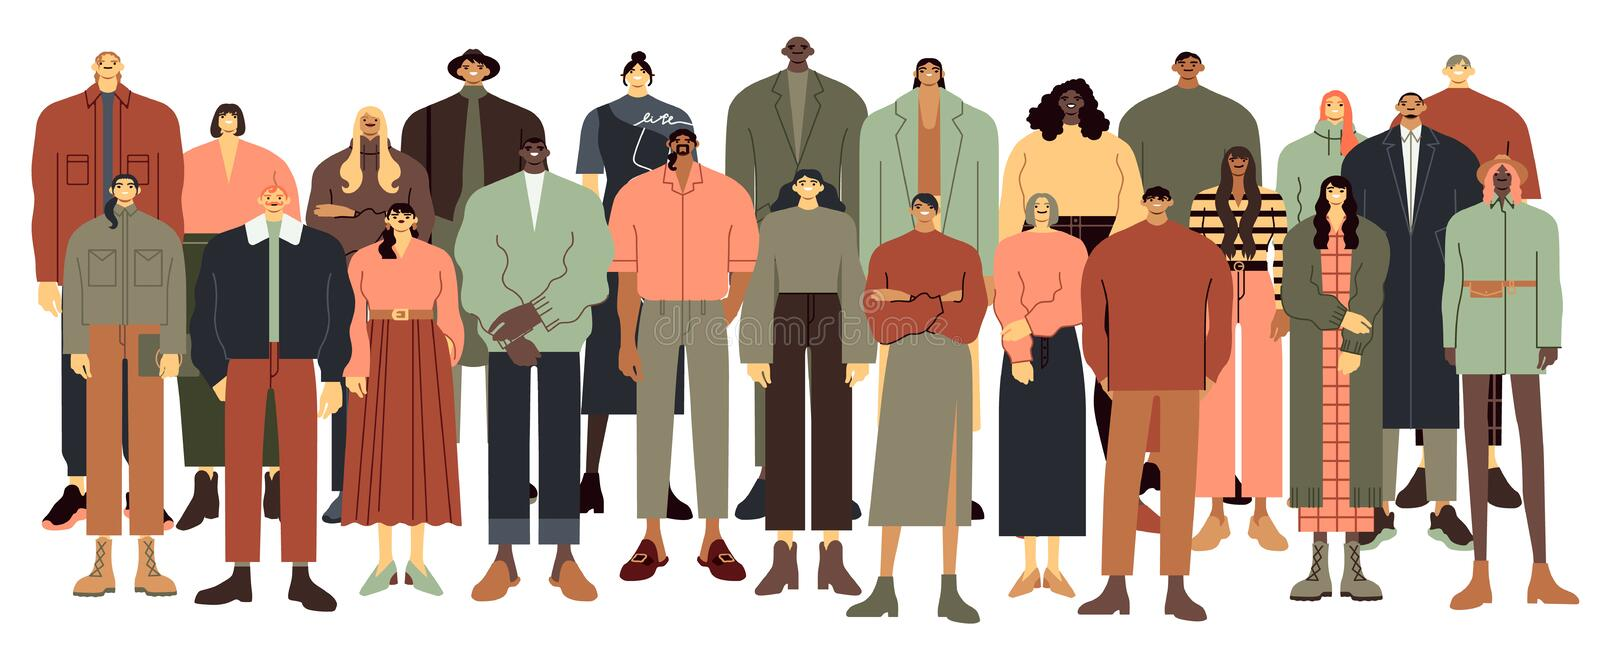 Multi ethnic people group. Multiracial student crowd, multinational young people standing together vector illustration stock illustration